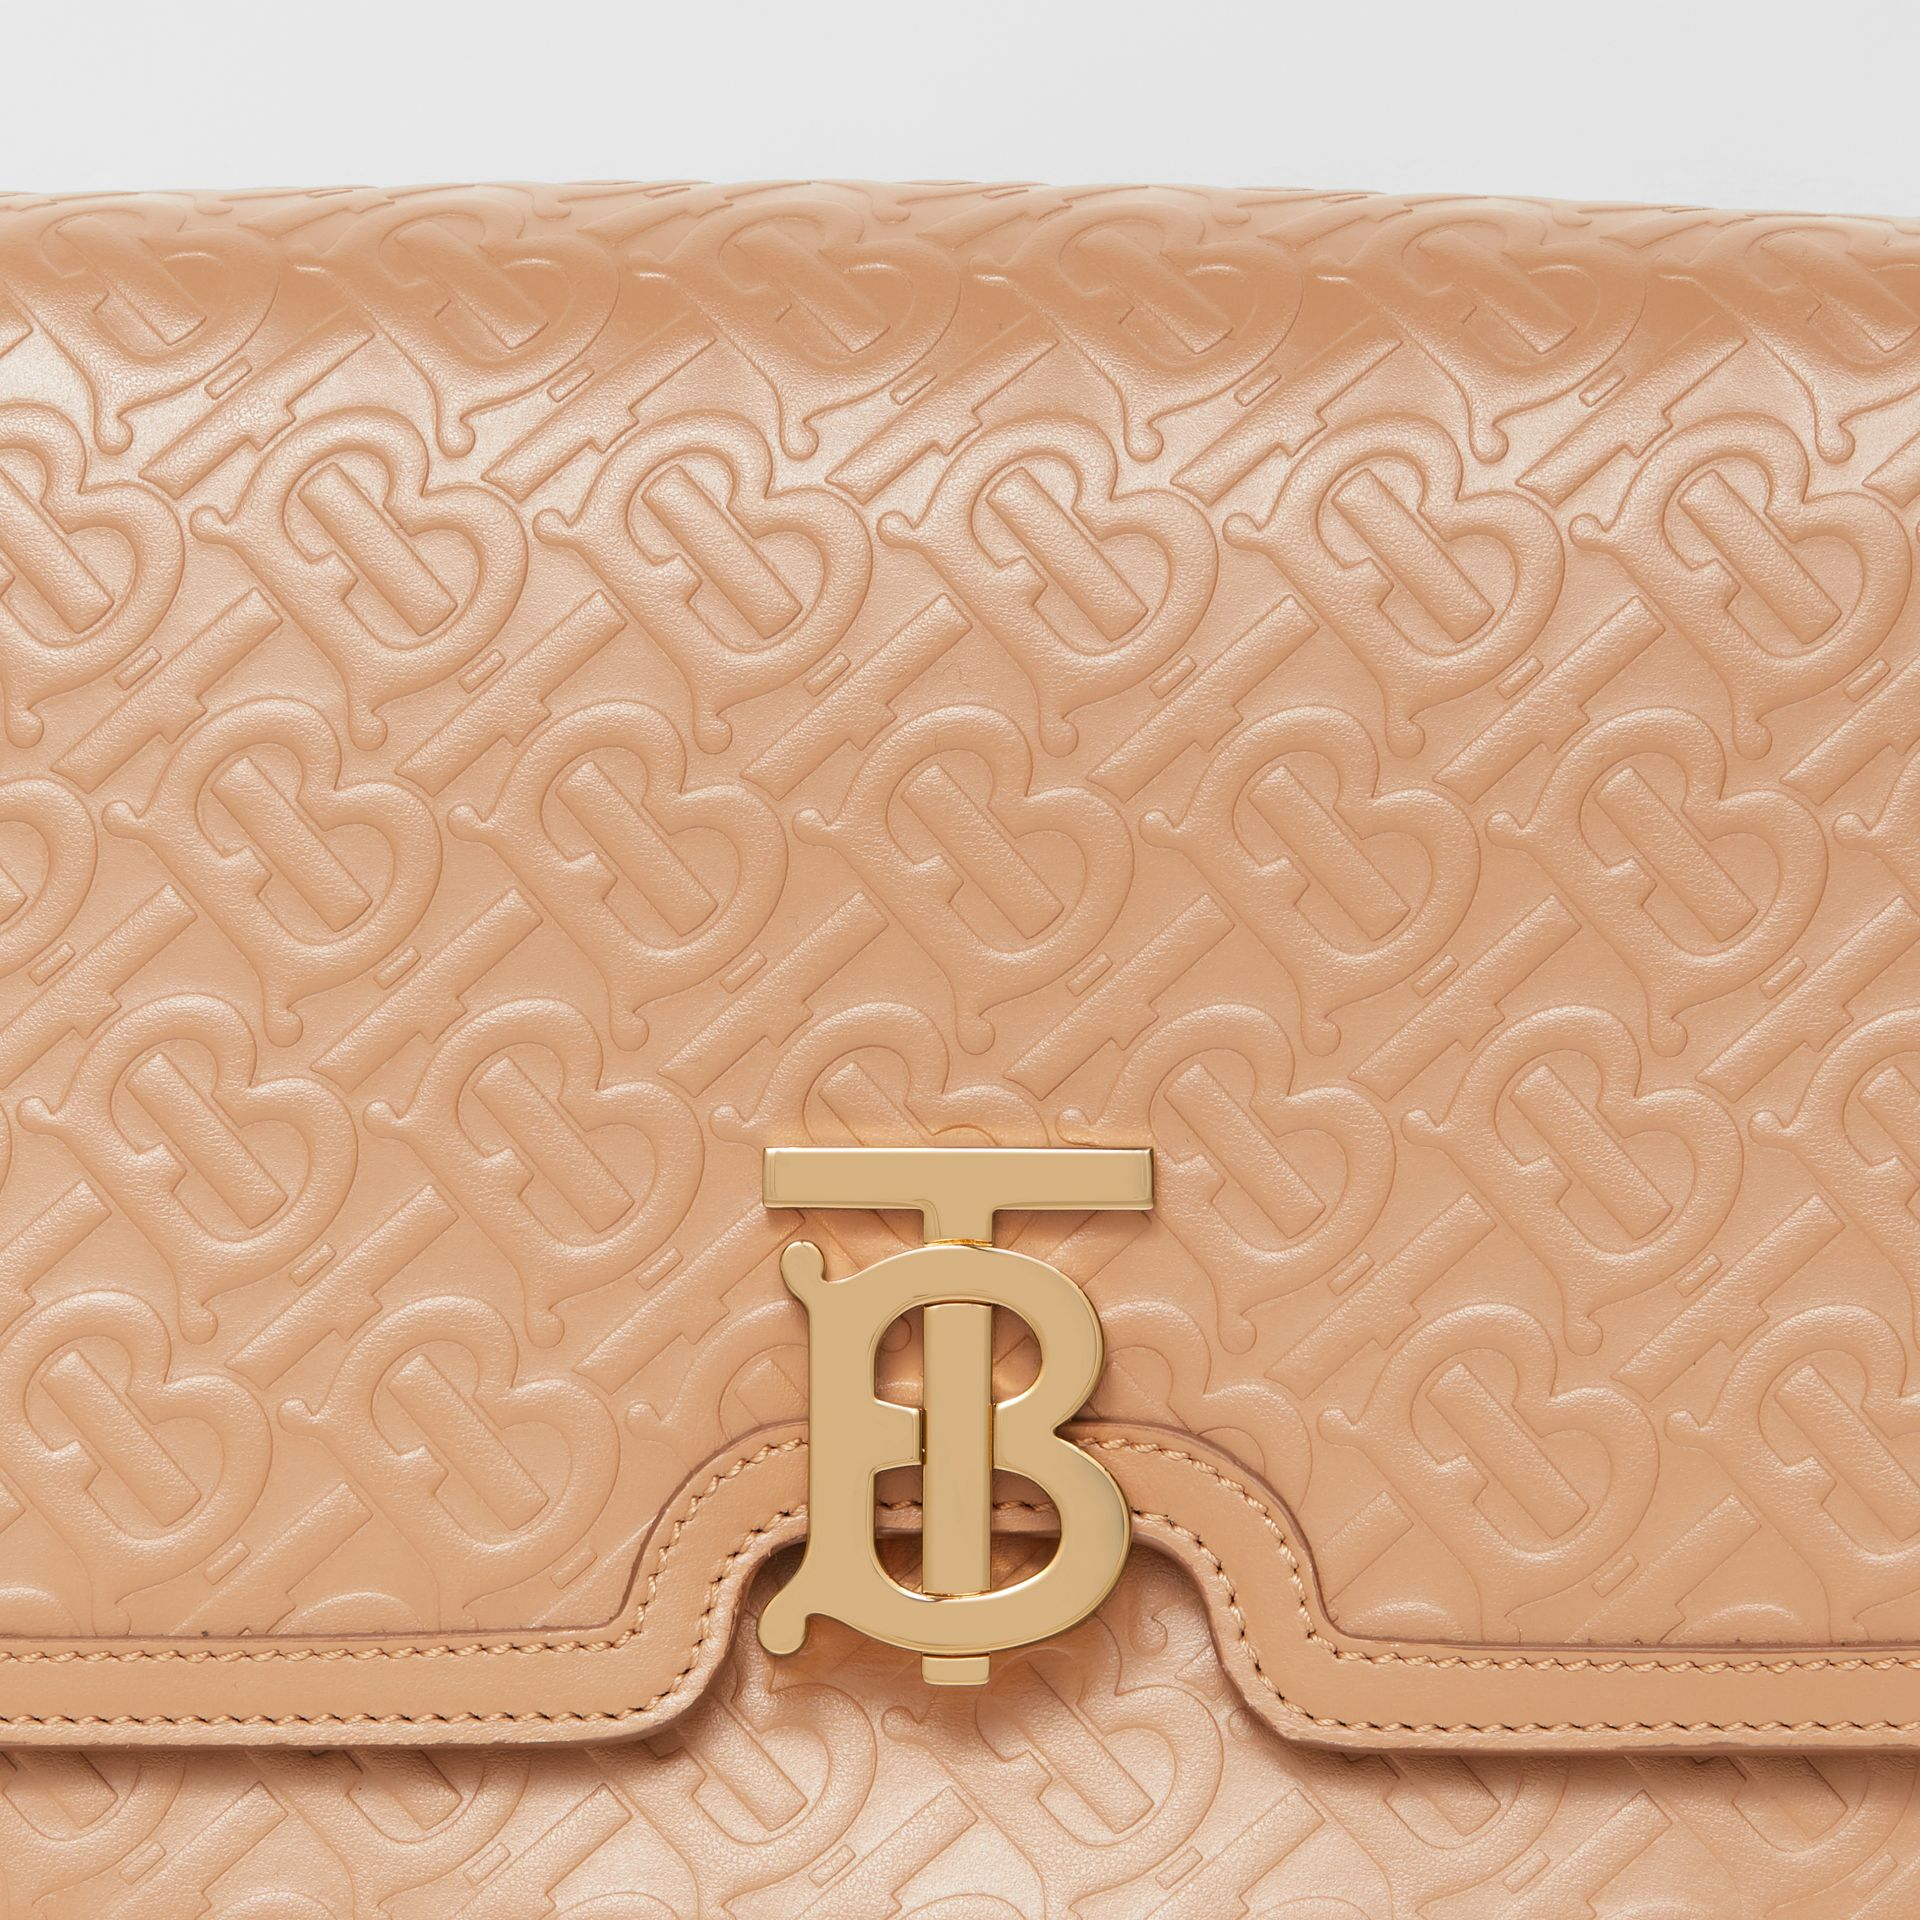 Medium Monogram Leather TB Bag in Light Camel - Women | Burberry United Kingdom - gallery image 7